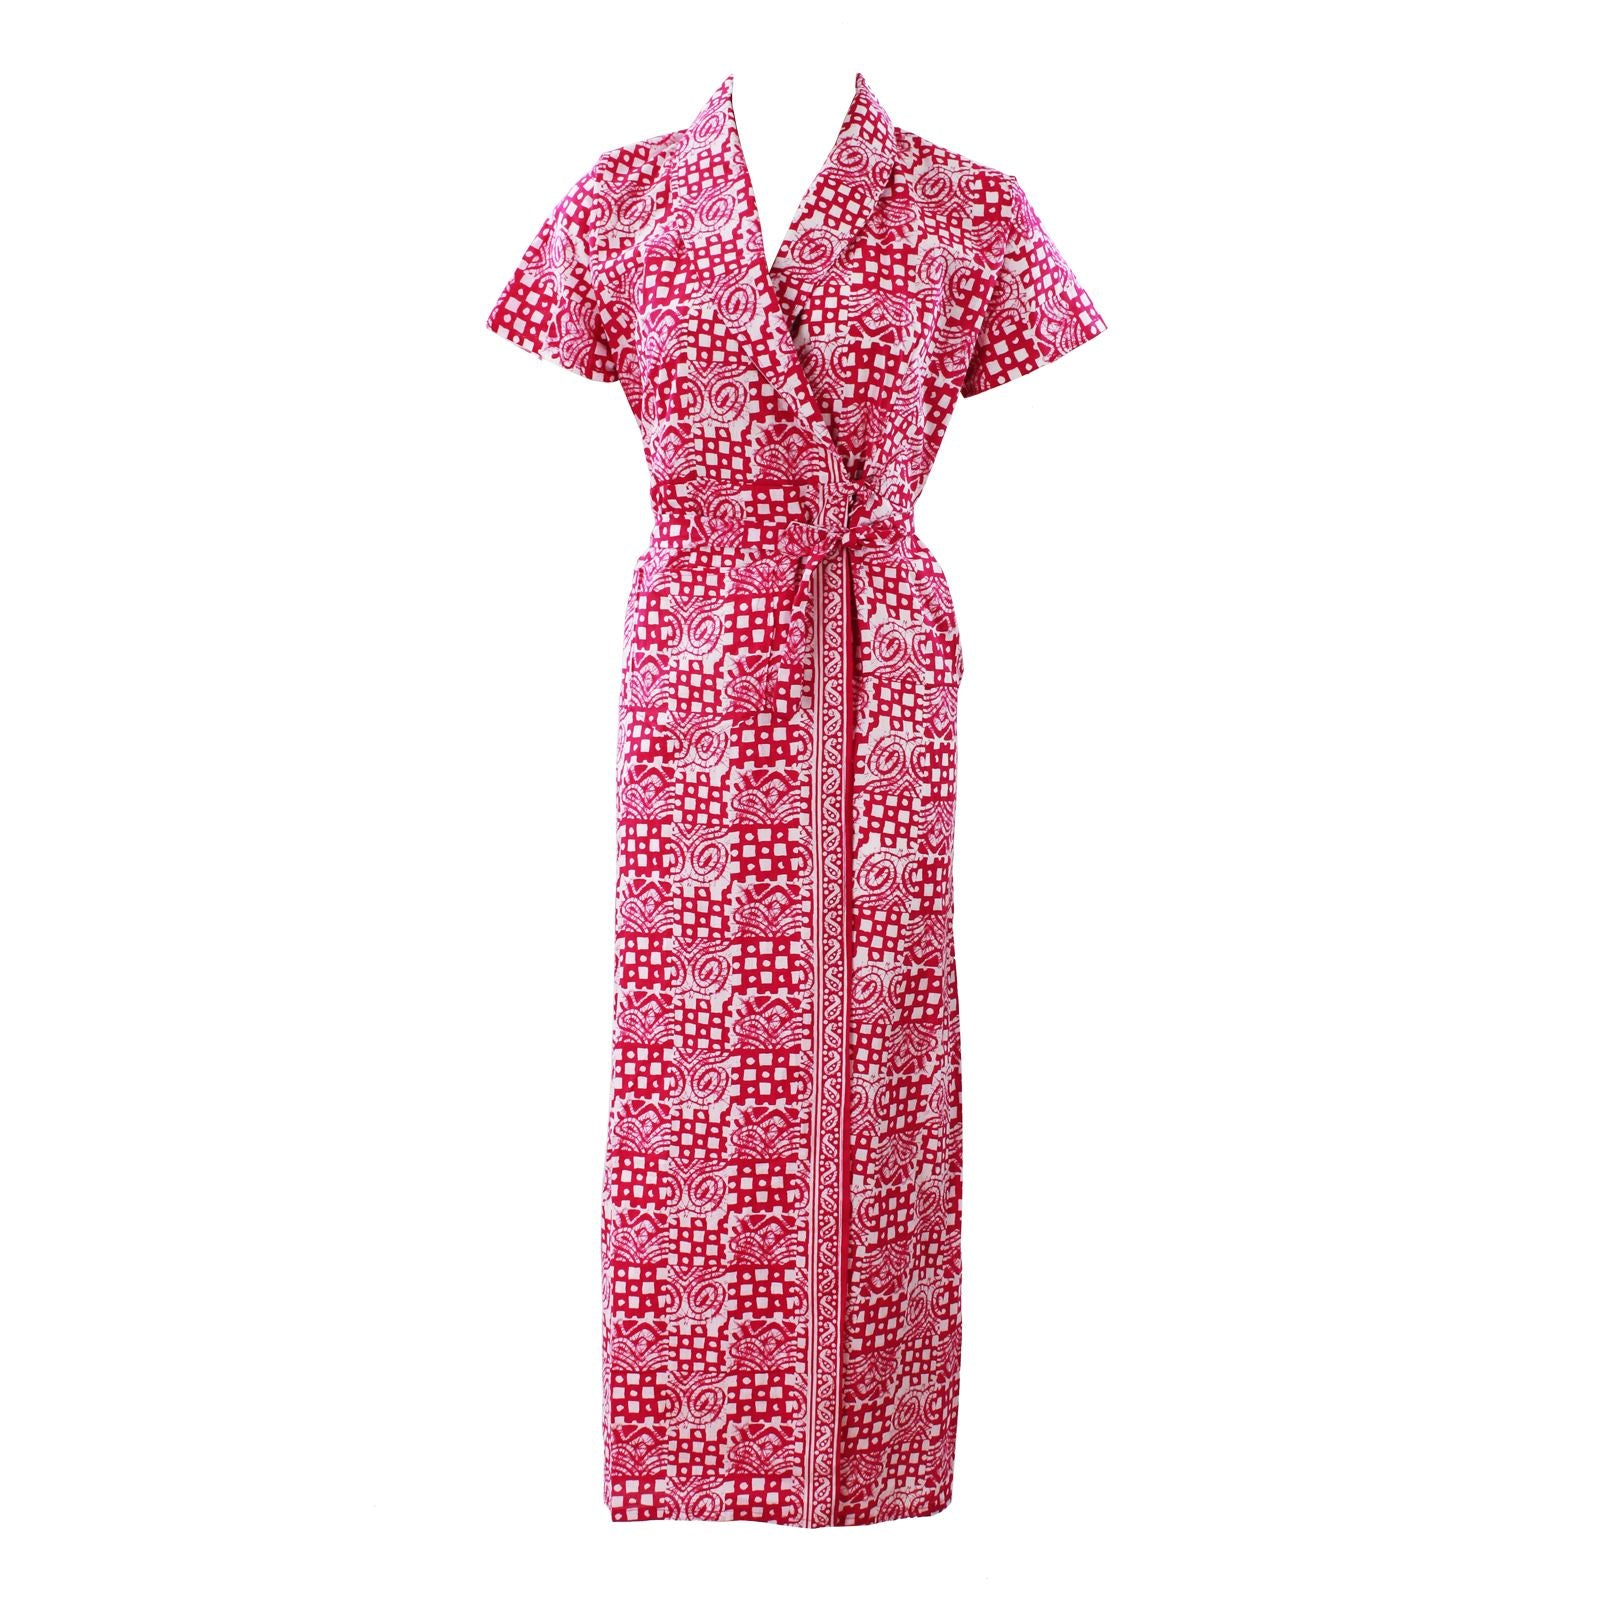 Color: Pink Printed 100% Cotton Bathrobe Wrap Gown Size: L (8-14)